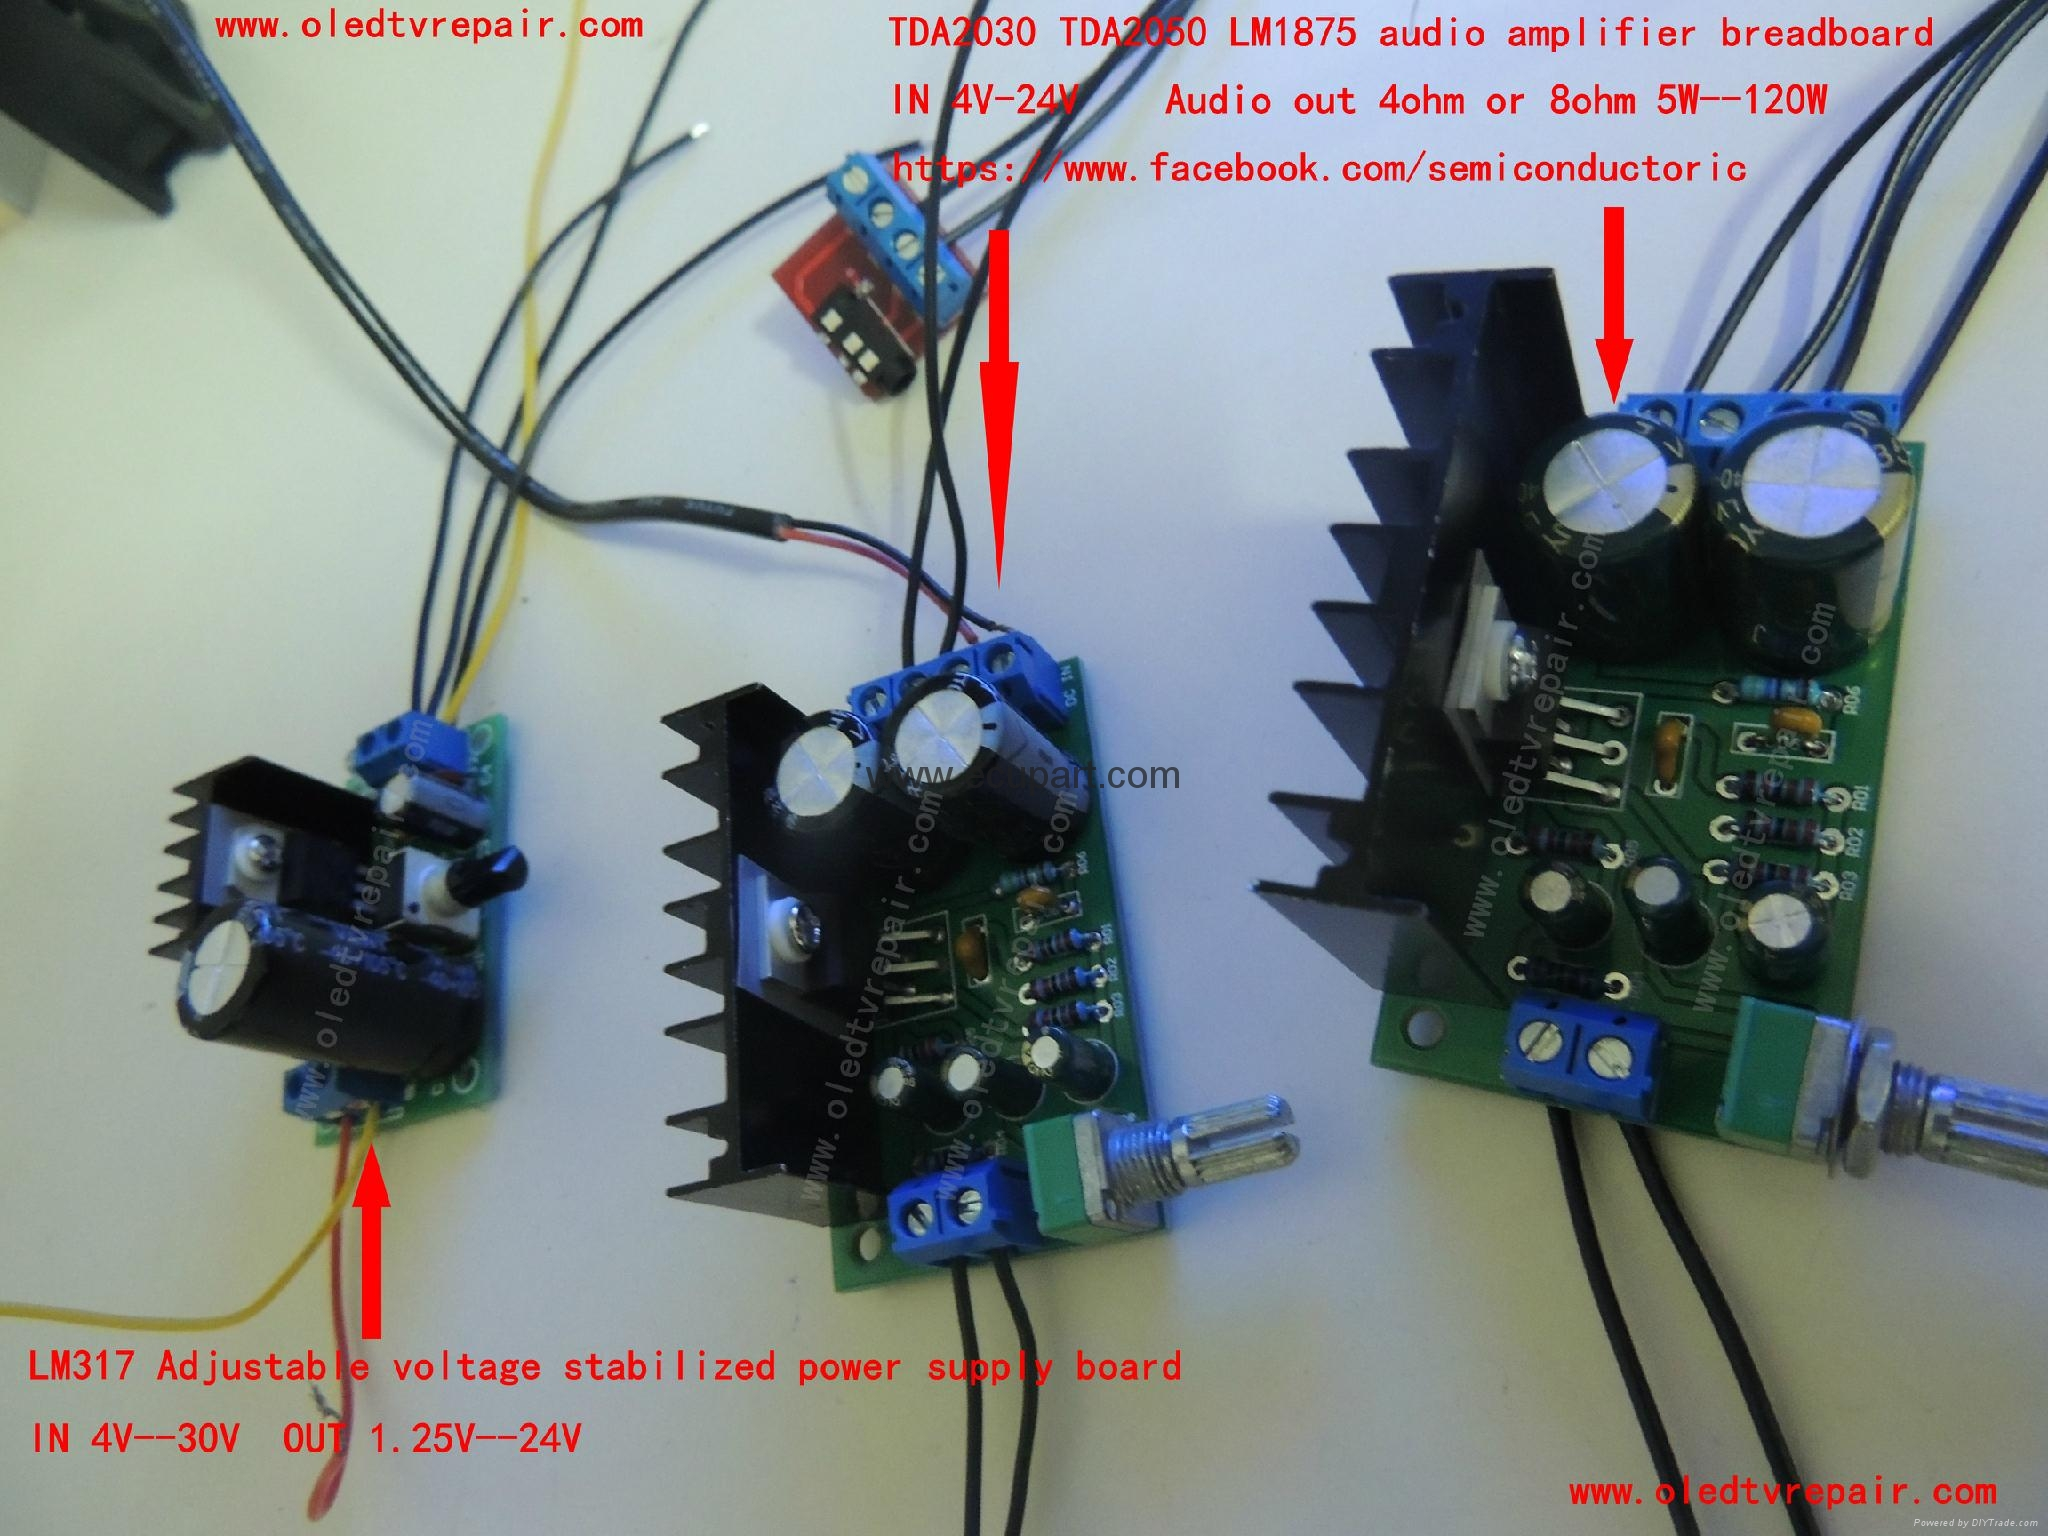 LM317 Adjustable voltage stabilized power supply board 2